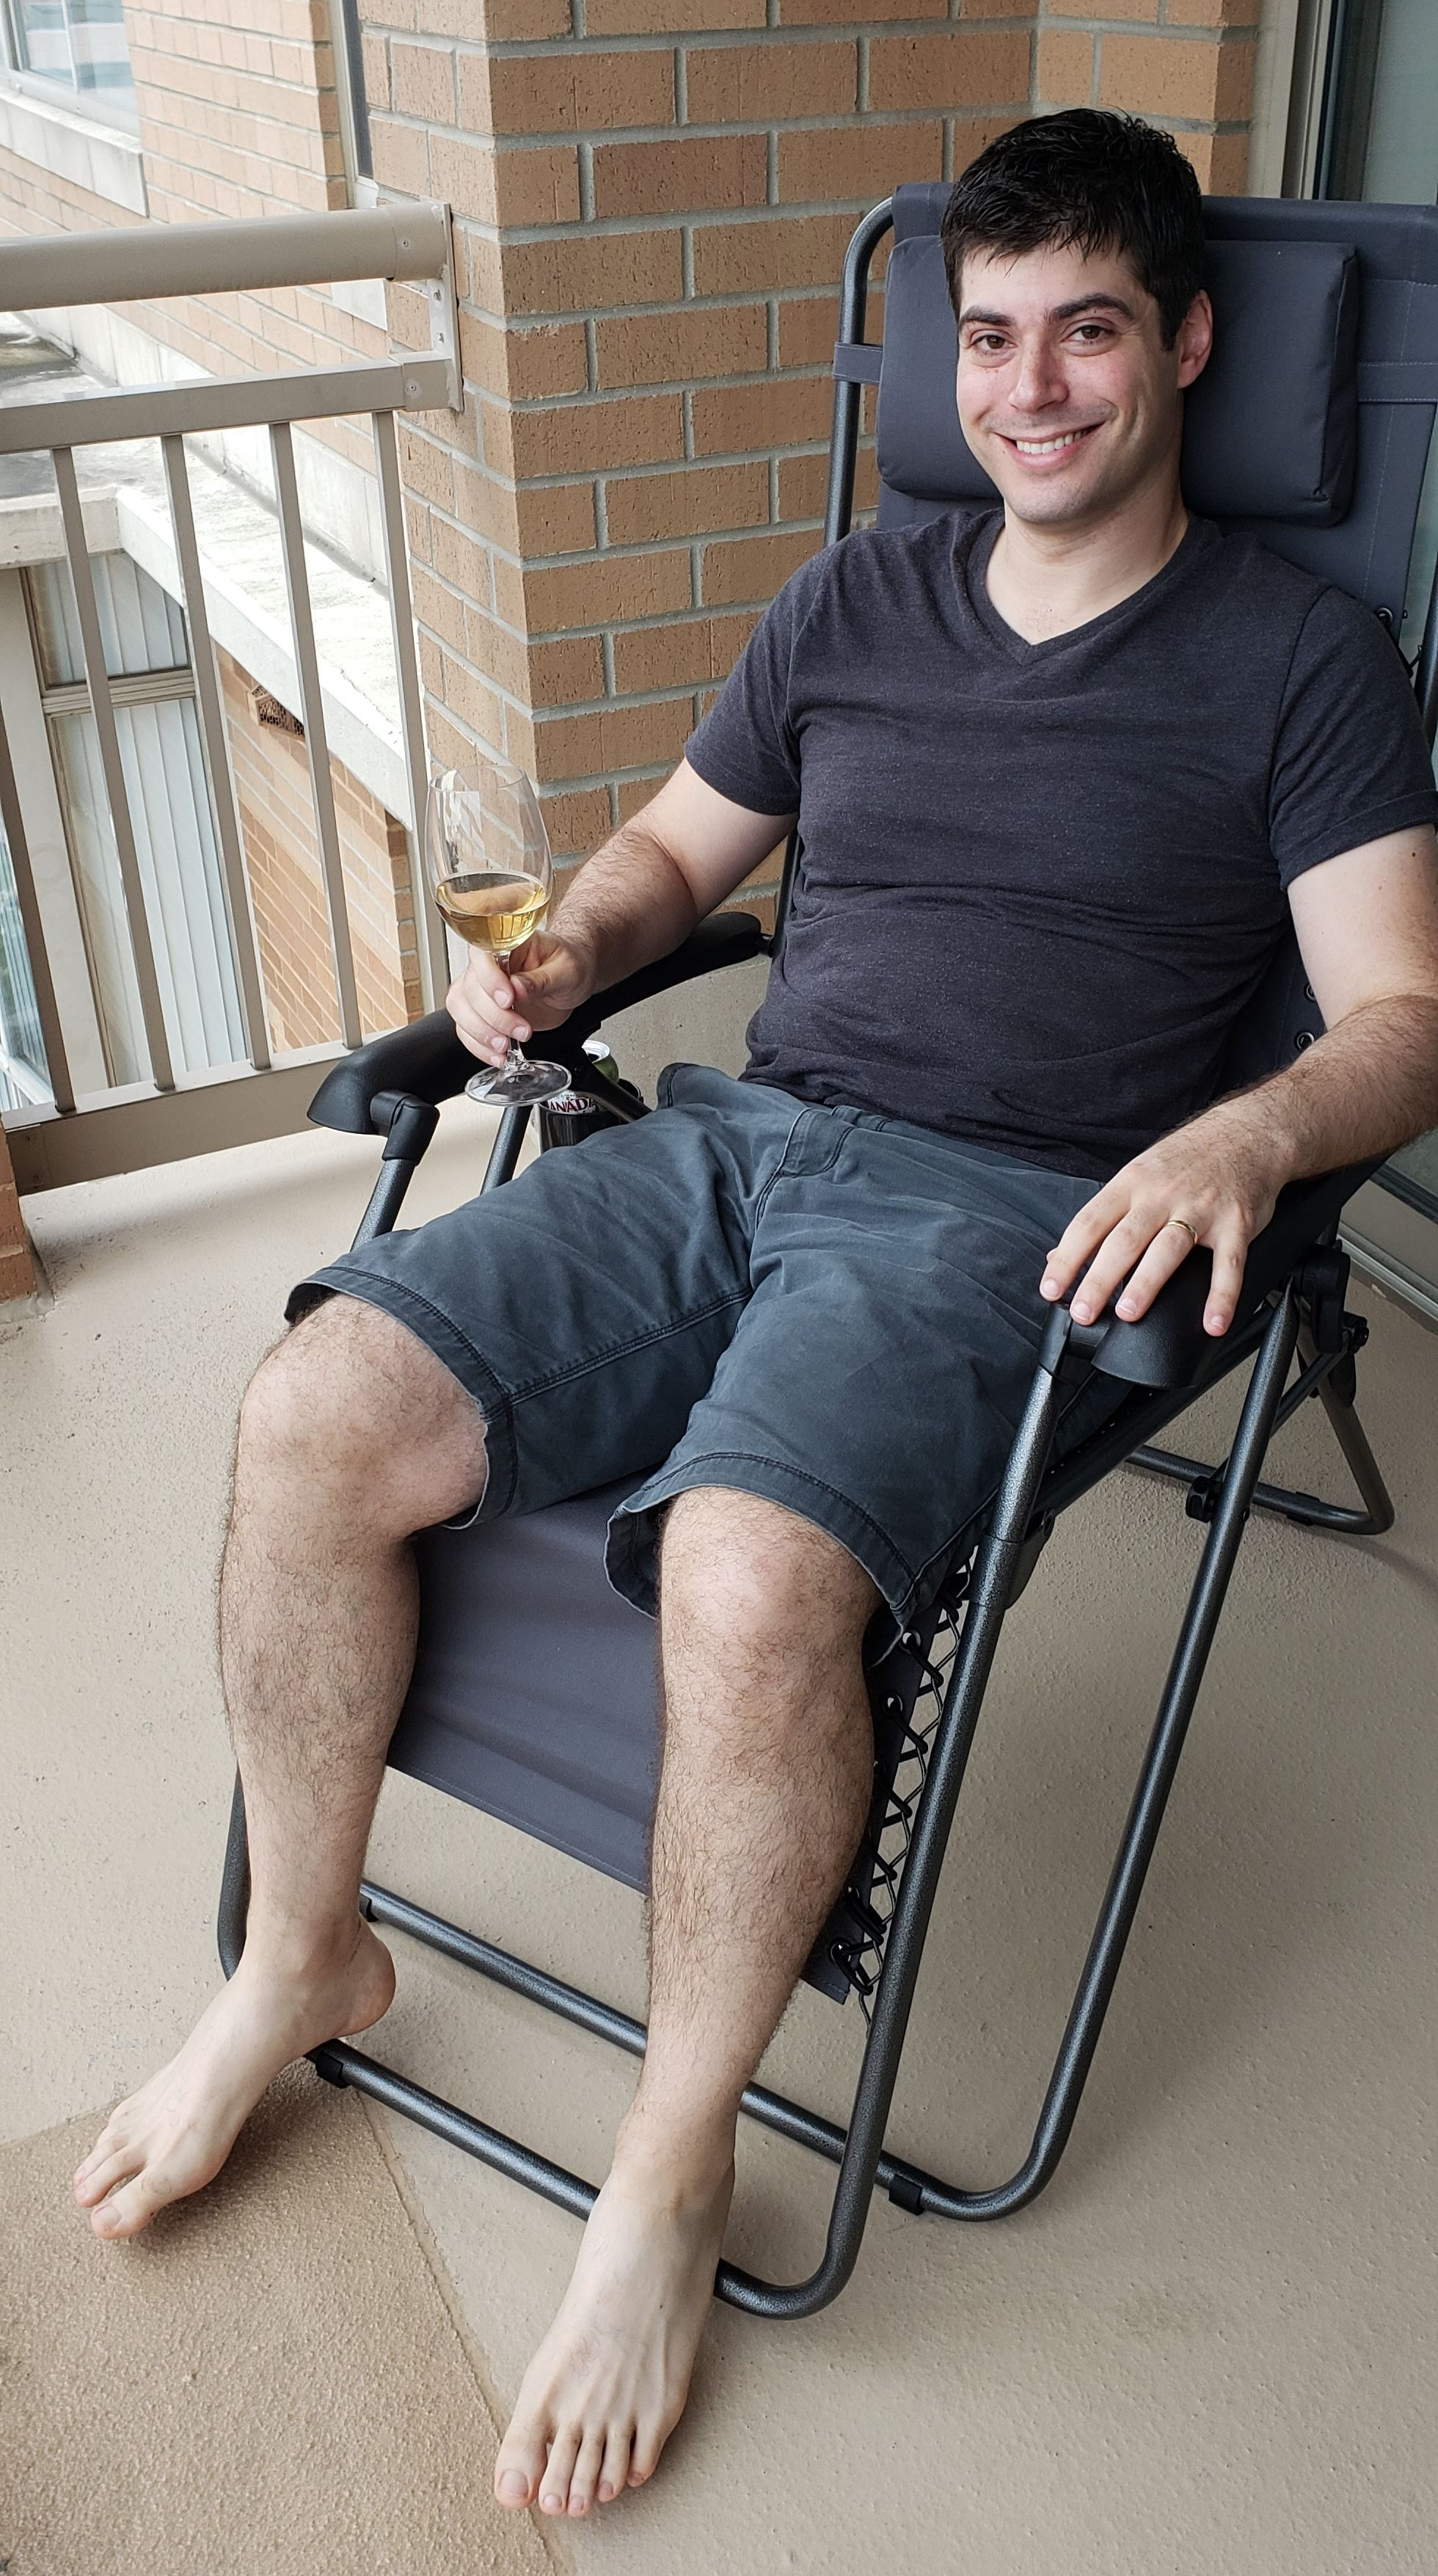 Product Review - Zero Gravity Lounge Chair by Timber Ridge